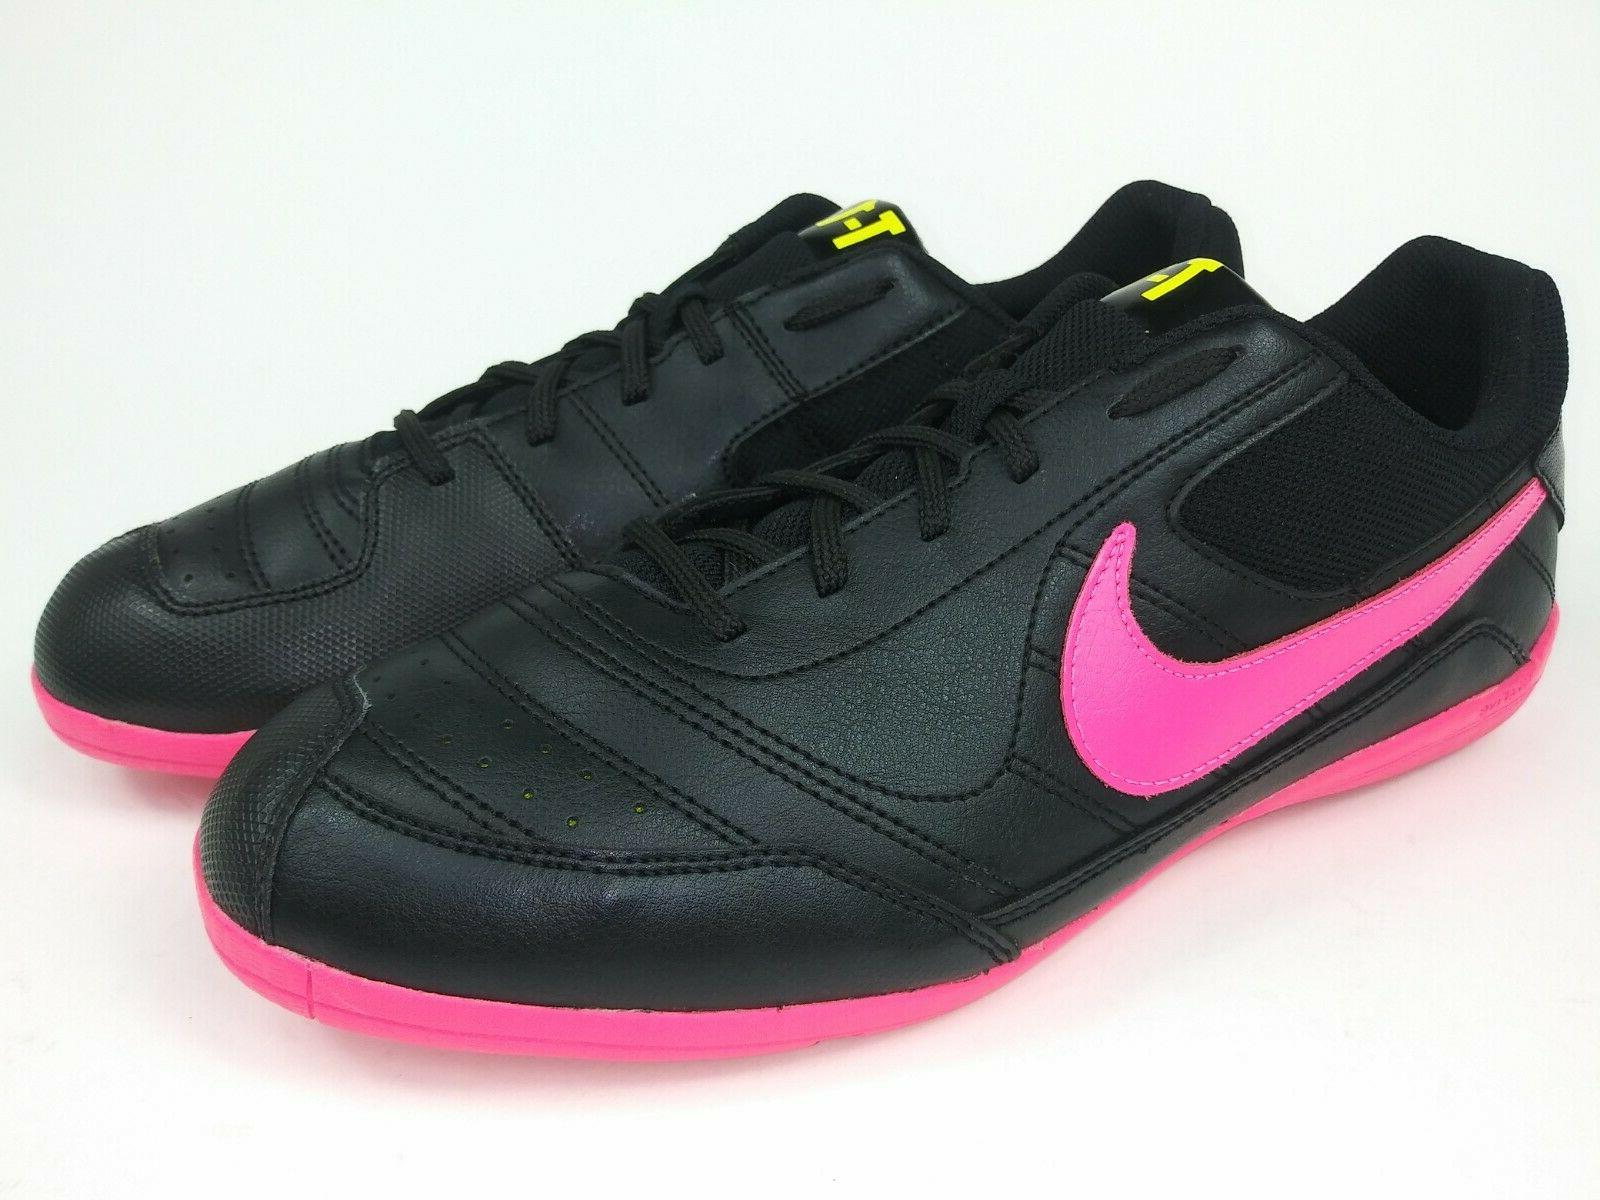 Nike Mens Nike5 T-1 344919-067 Pink Soccer Cleats